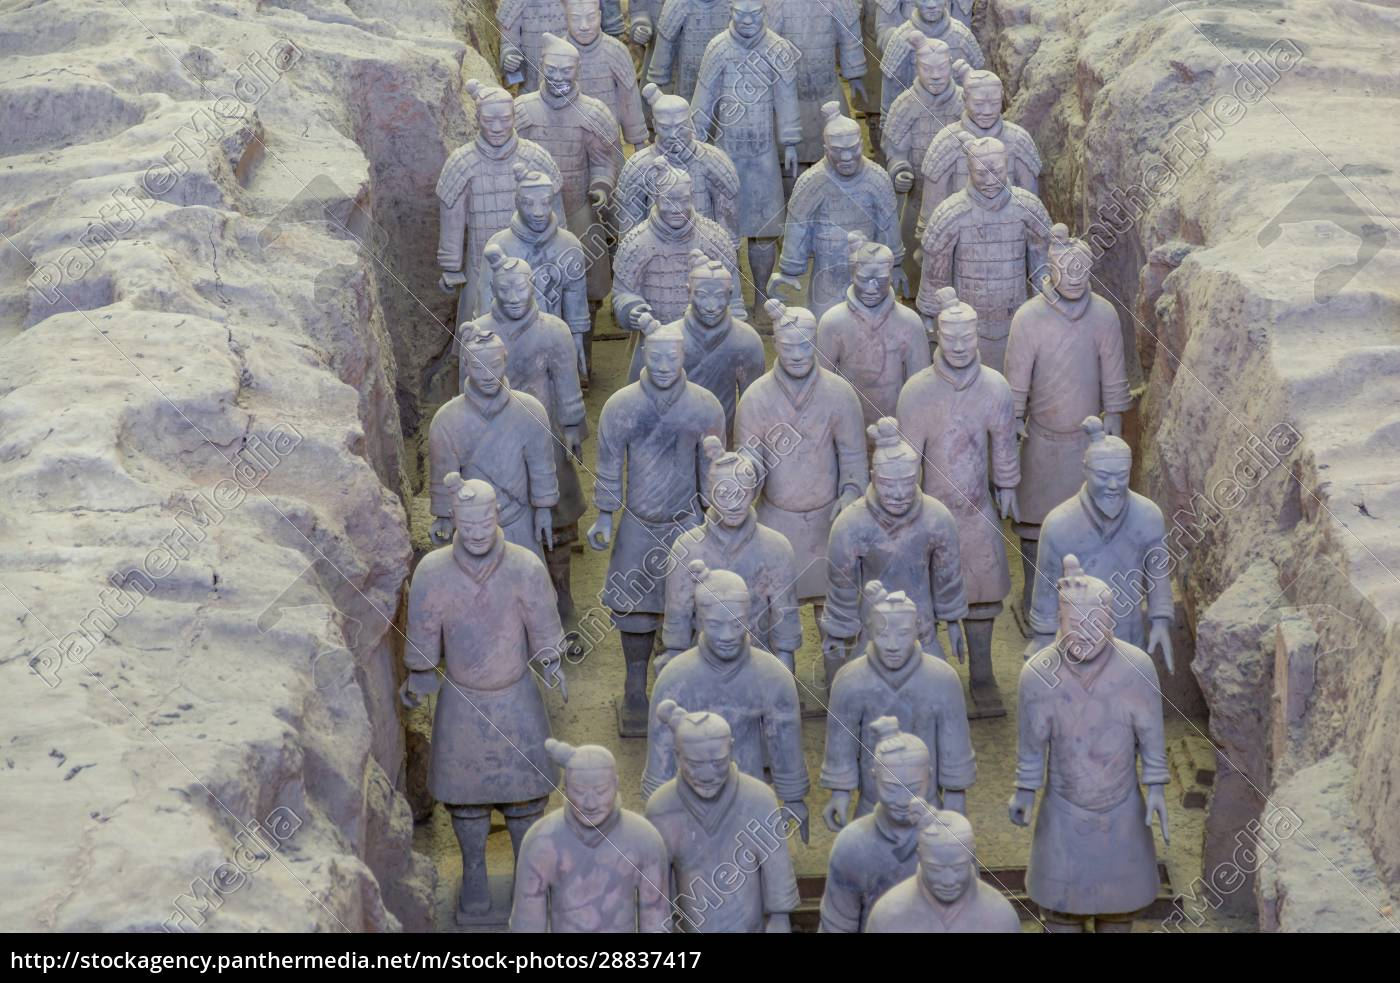 view, of, terracotta, warriors, in, the - 28837417